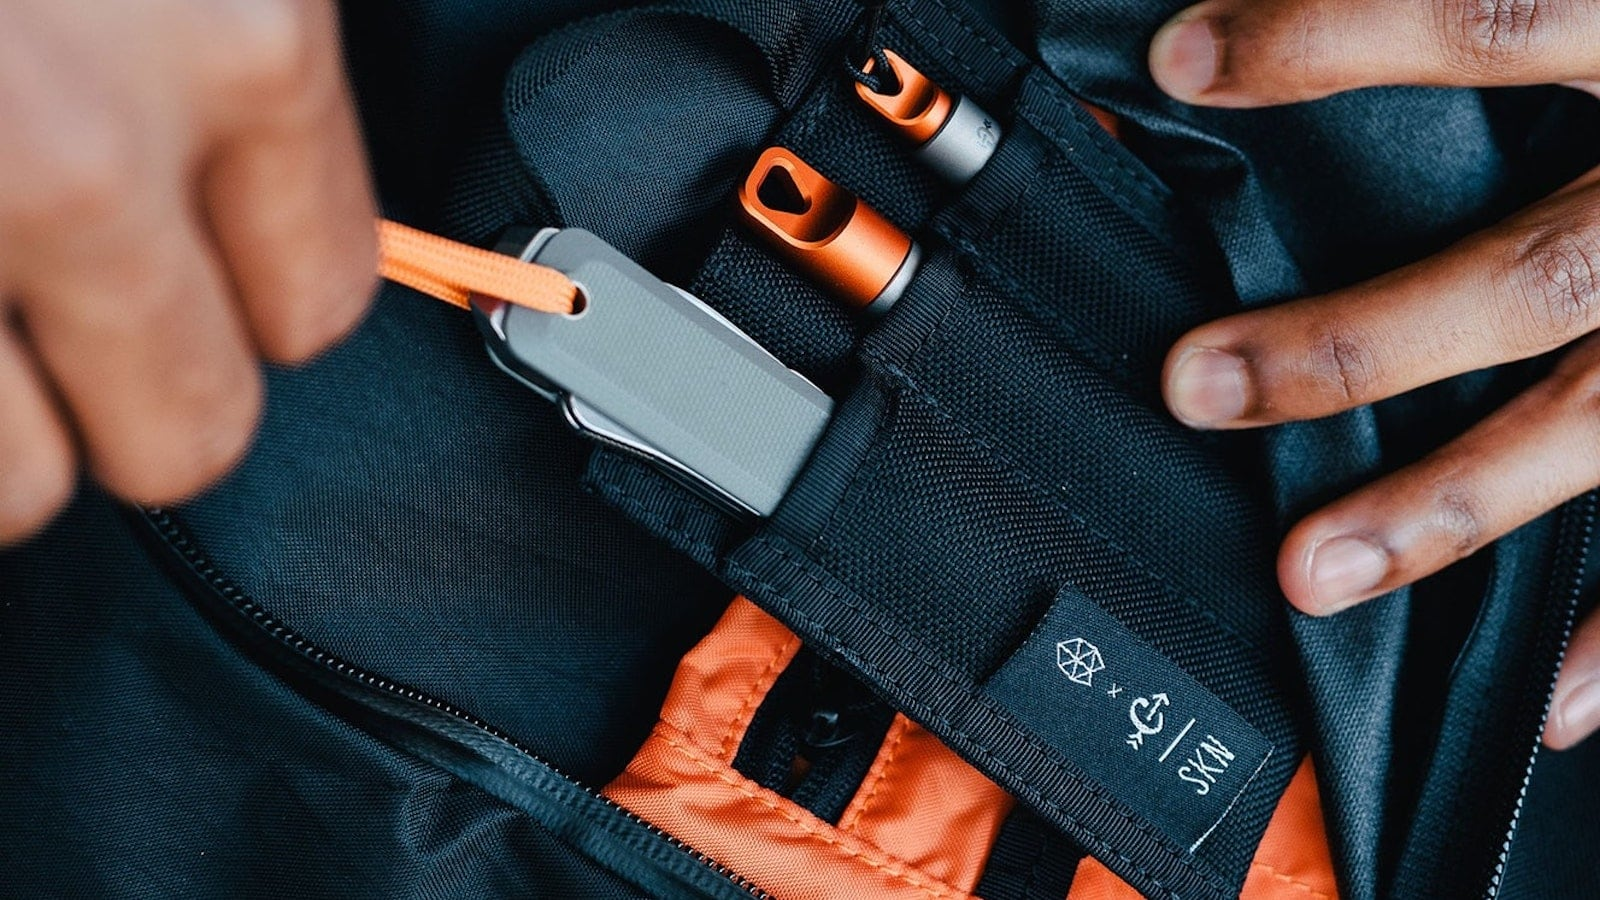 The James Brand & Carryology The Rover Capsule EDC Kit